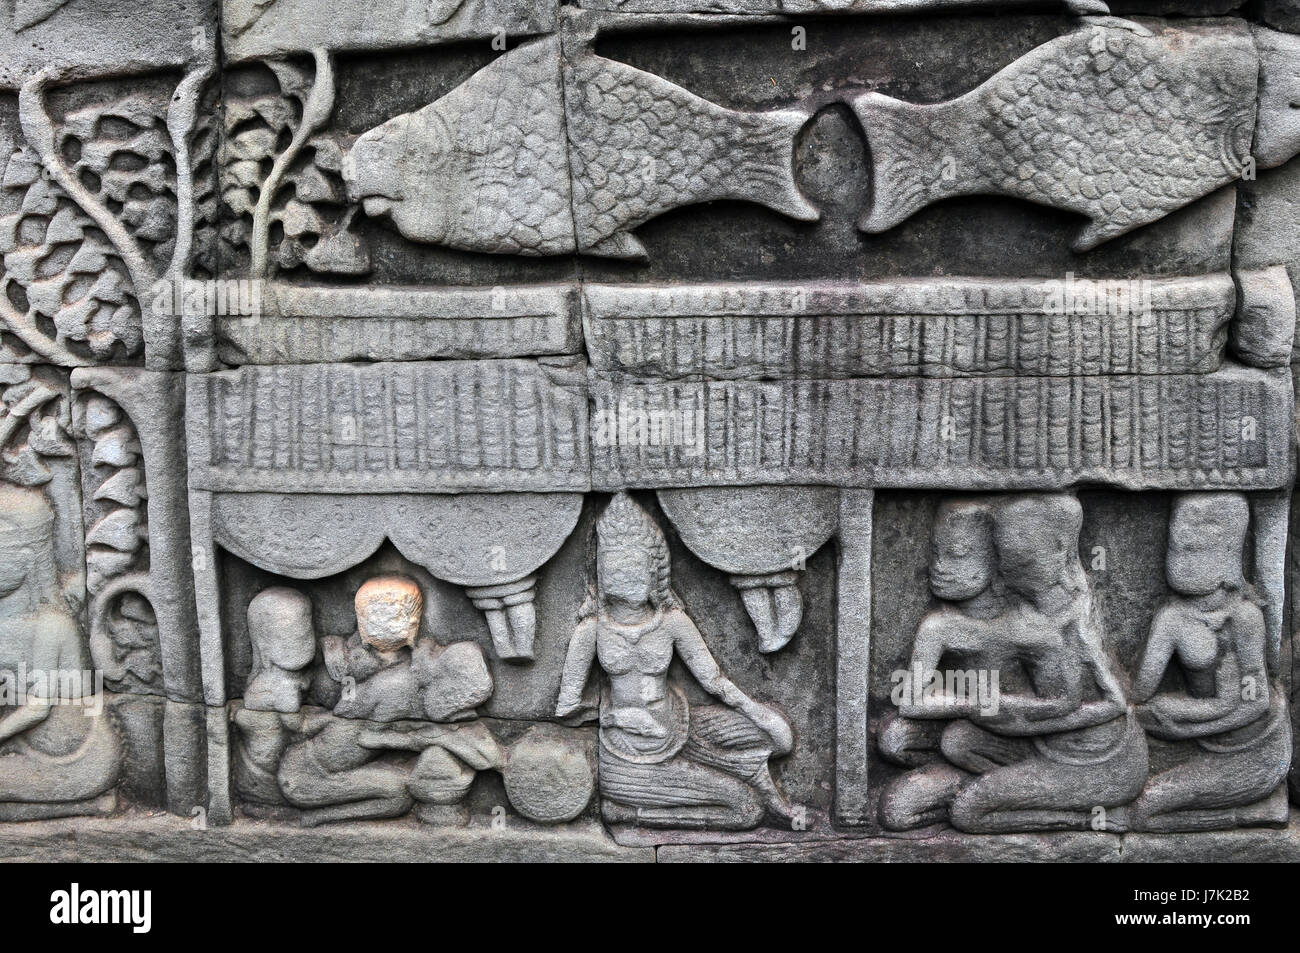 Stone wall carvings from the ancient city of angkor thom cambodia